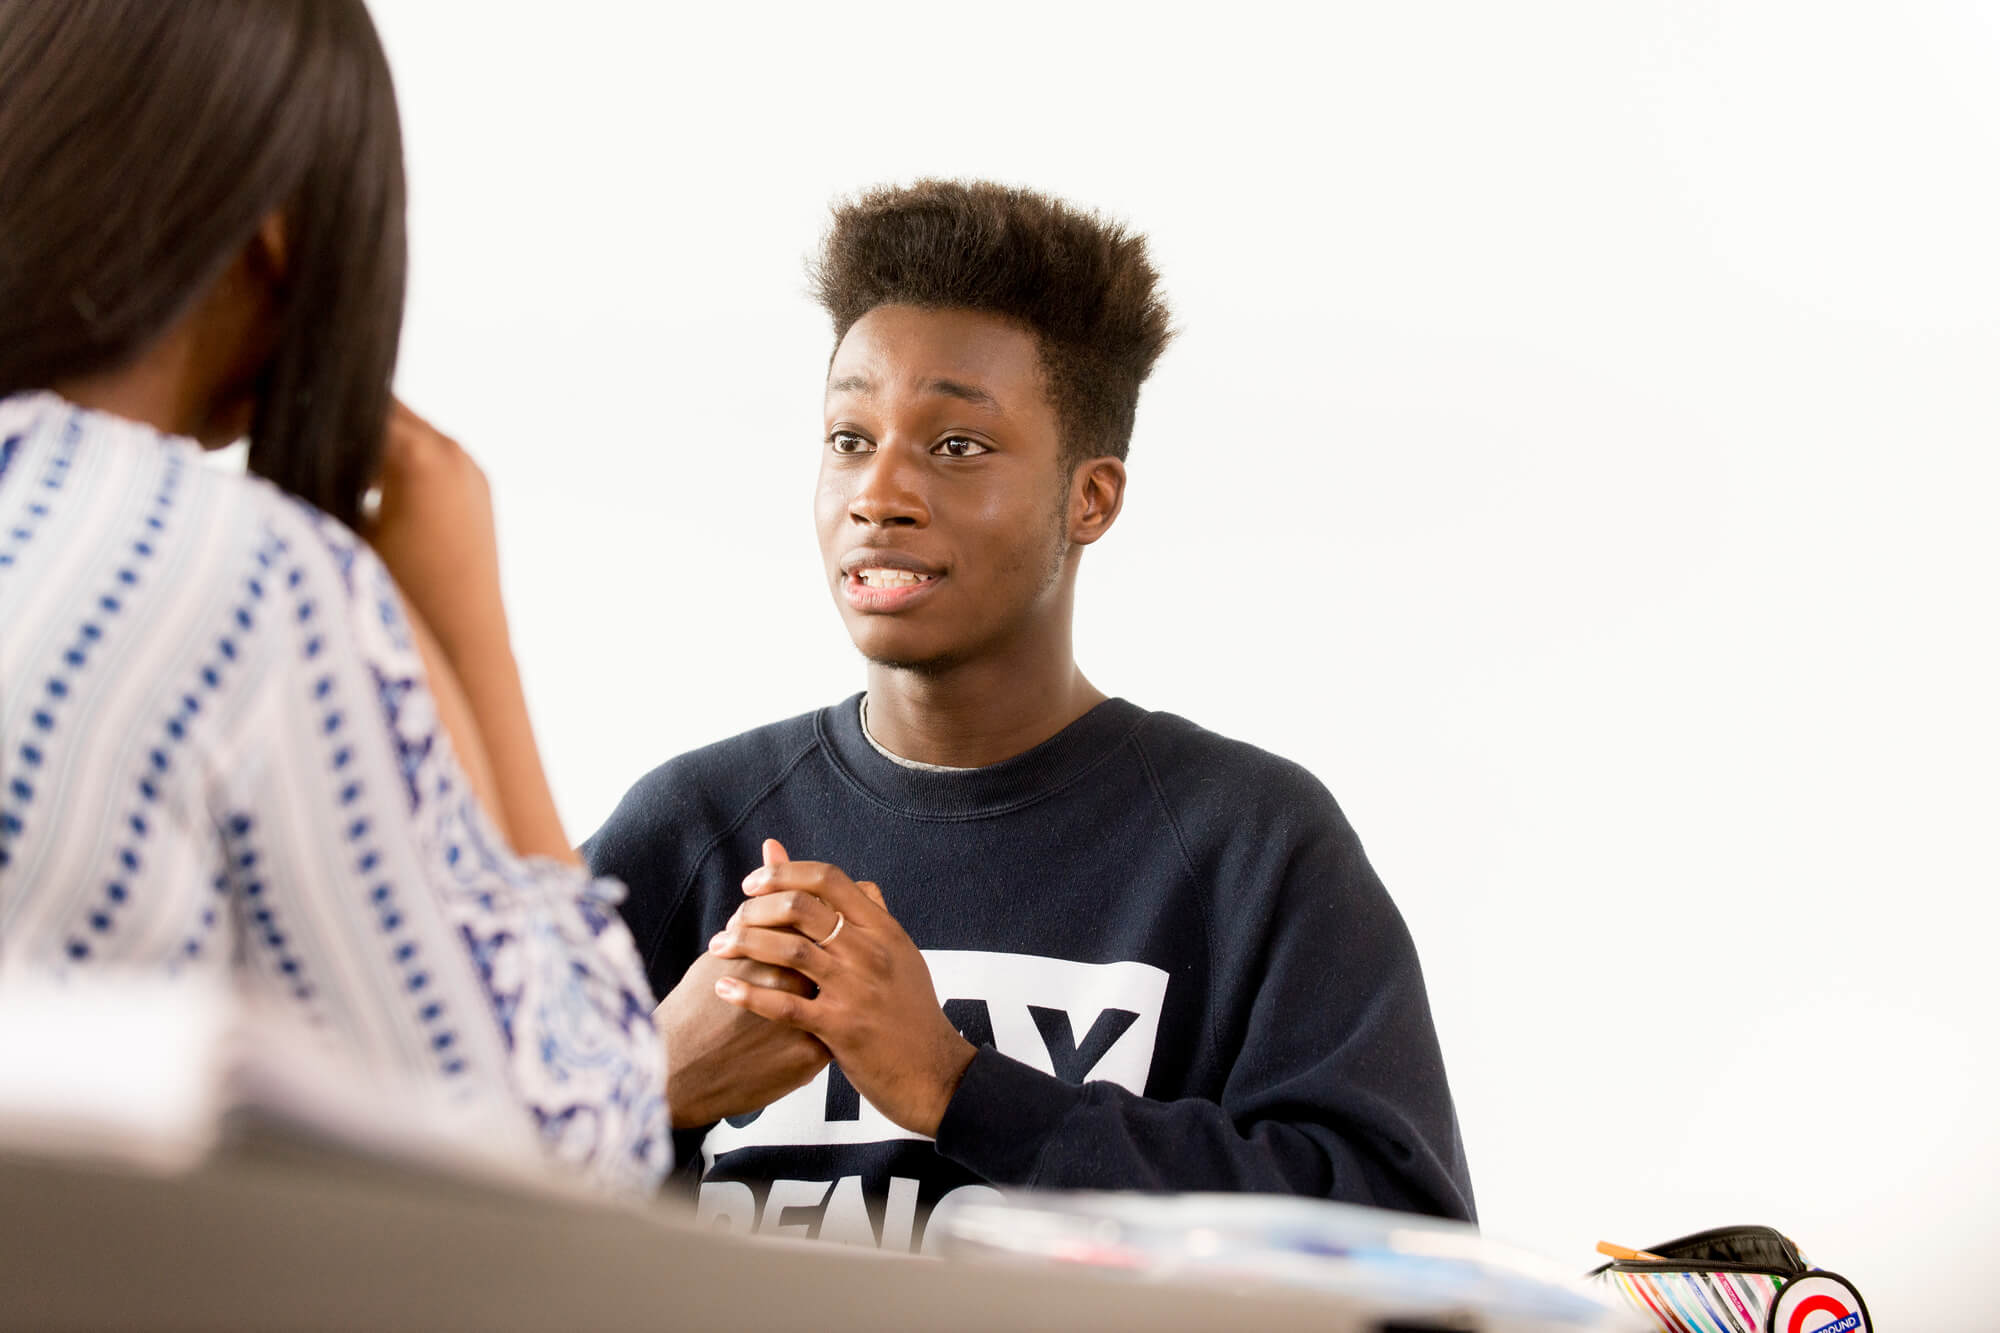 Student in practical work of counselling